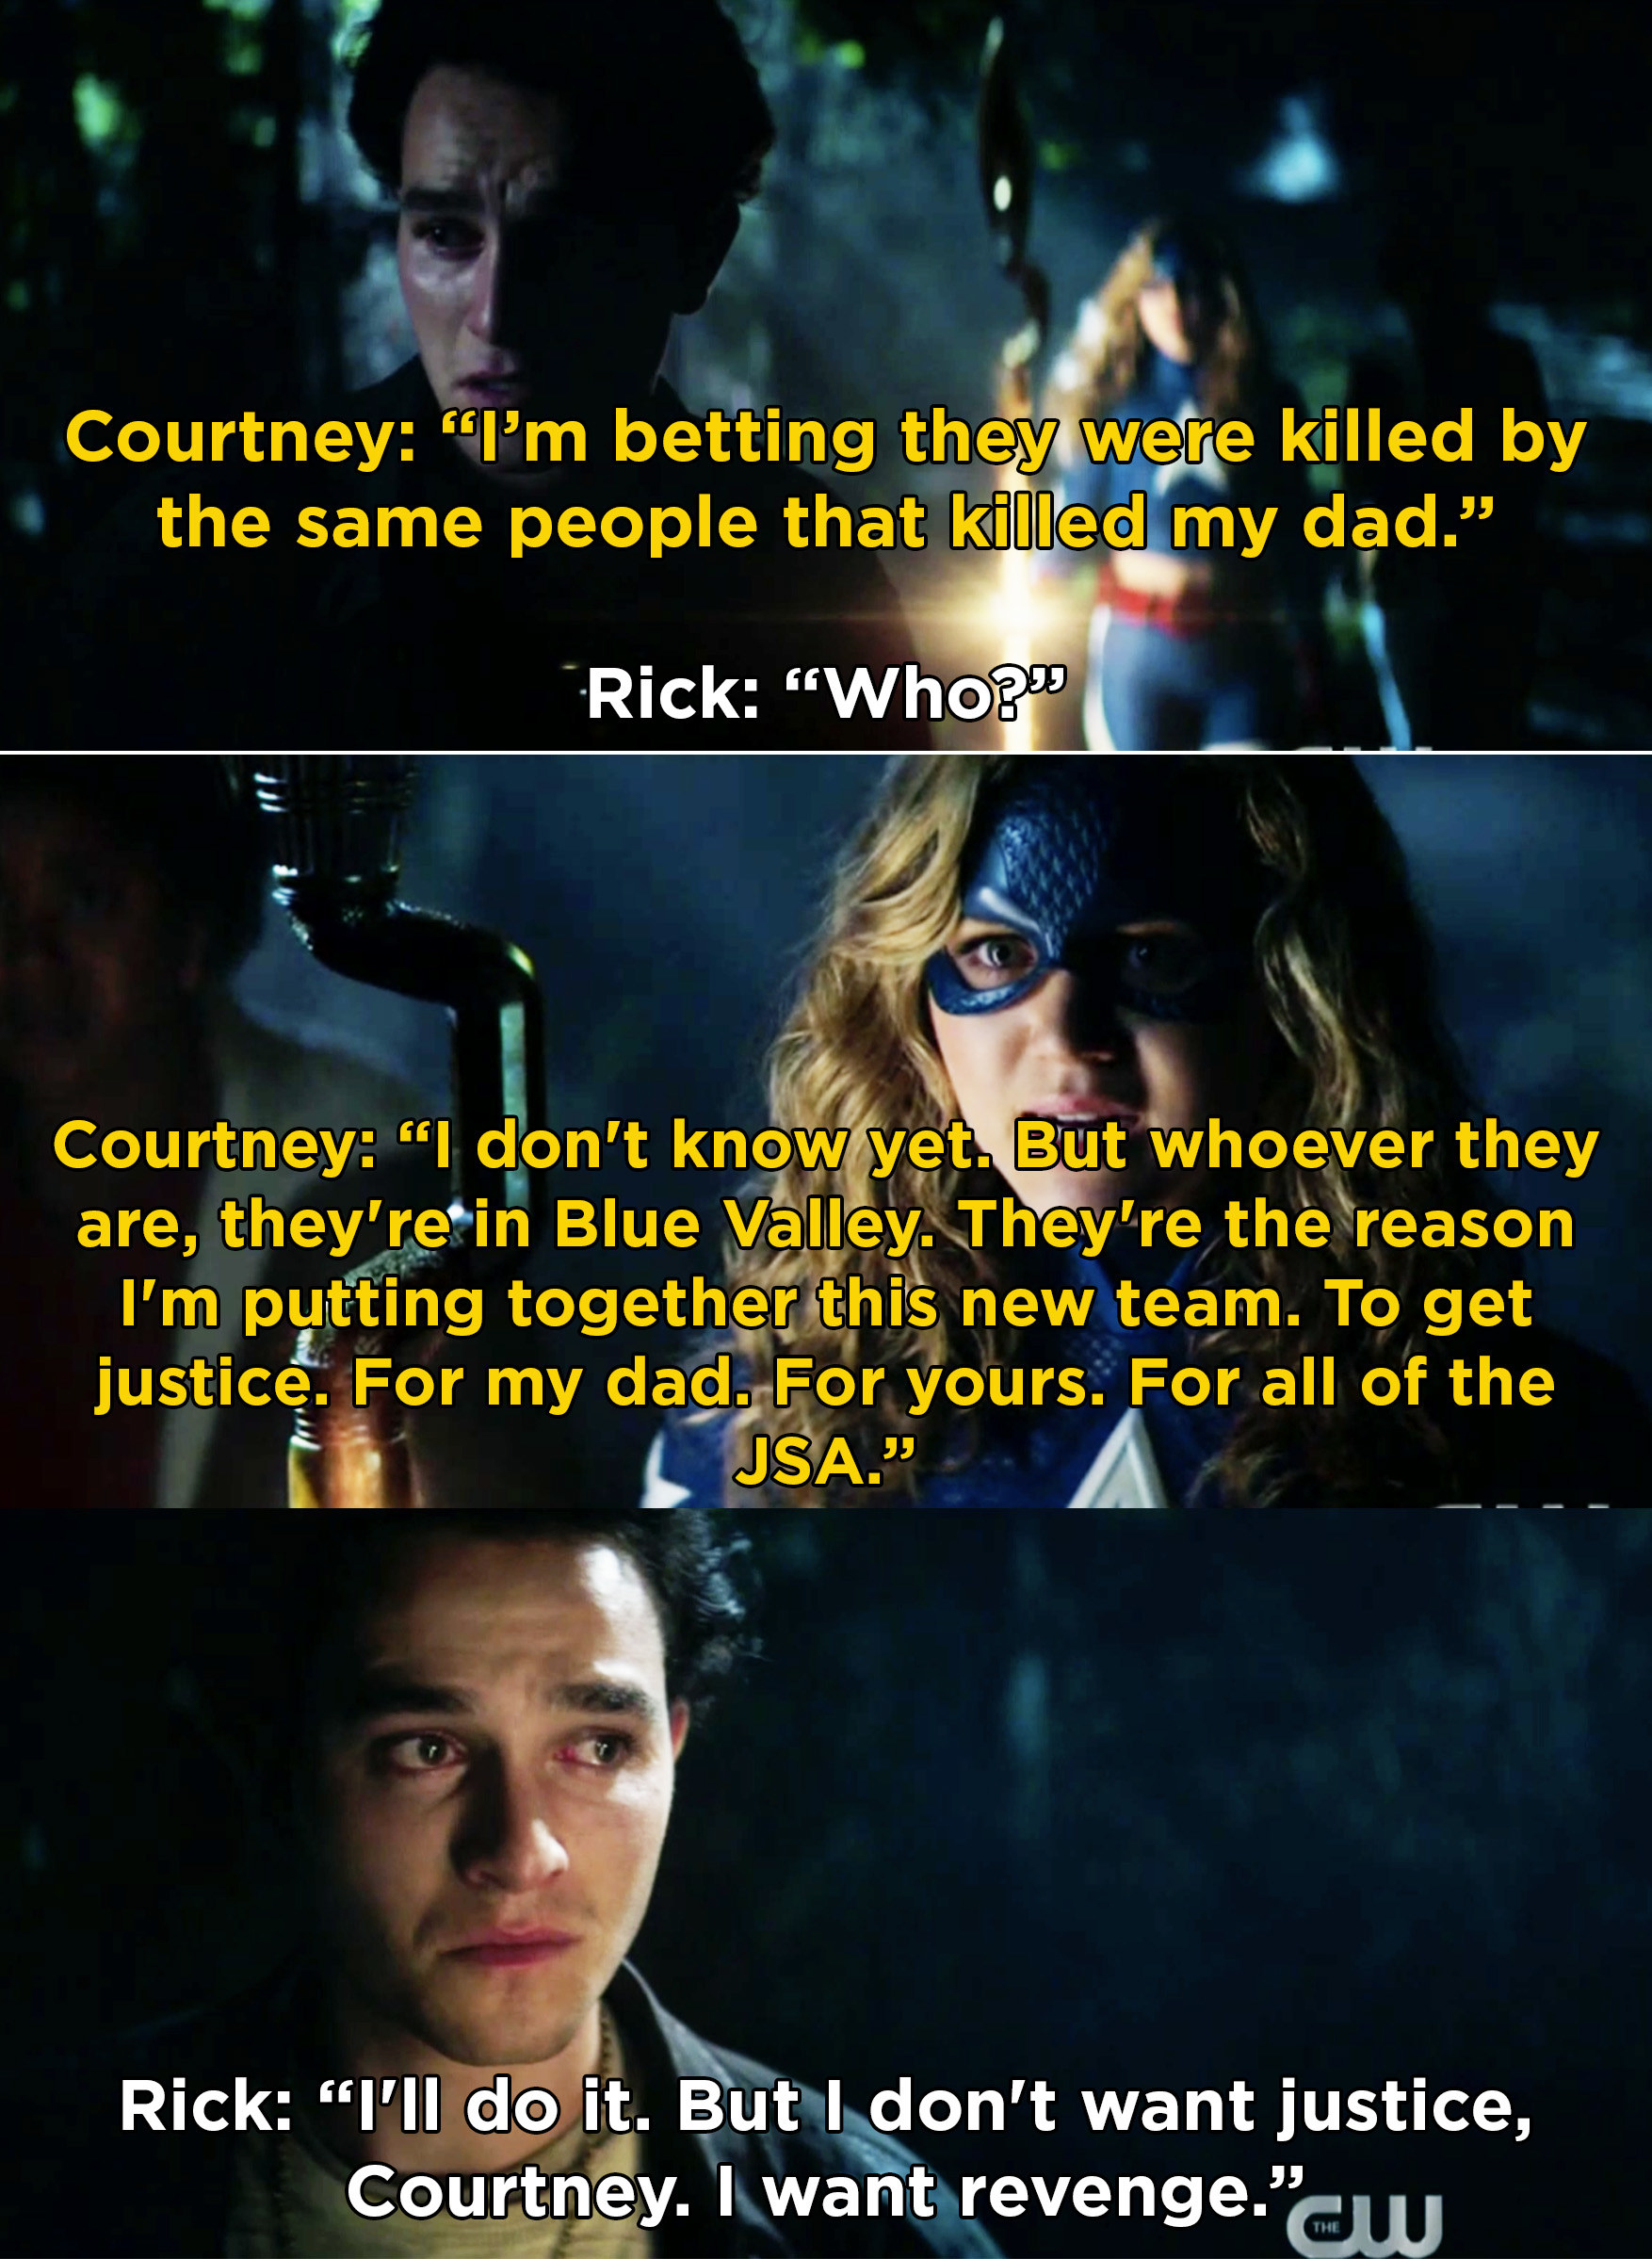 Courtney telling Rick that she is forming her new team to get justice for the JSA